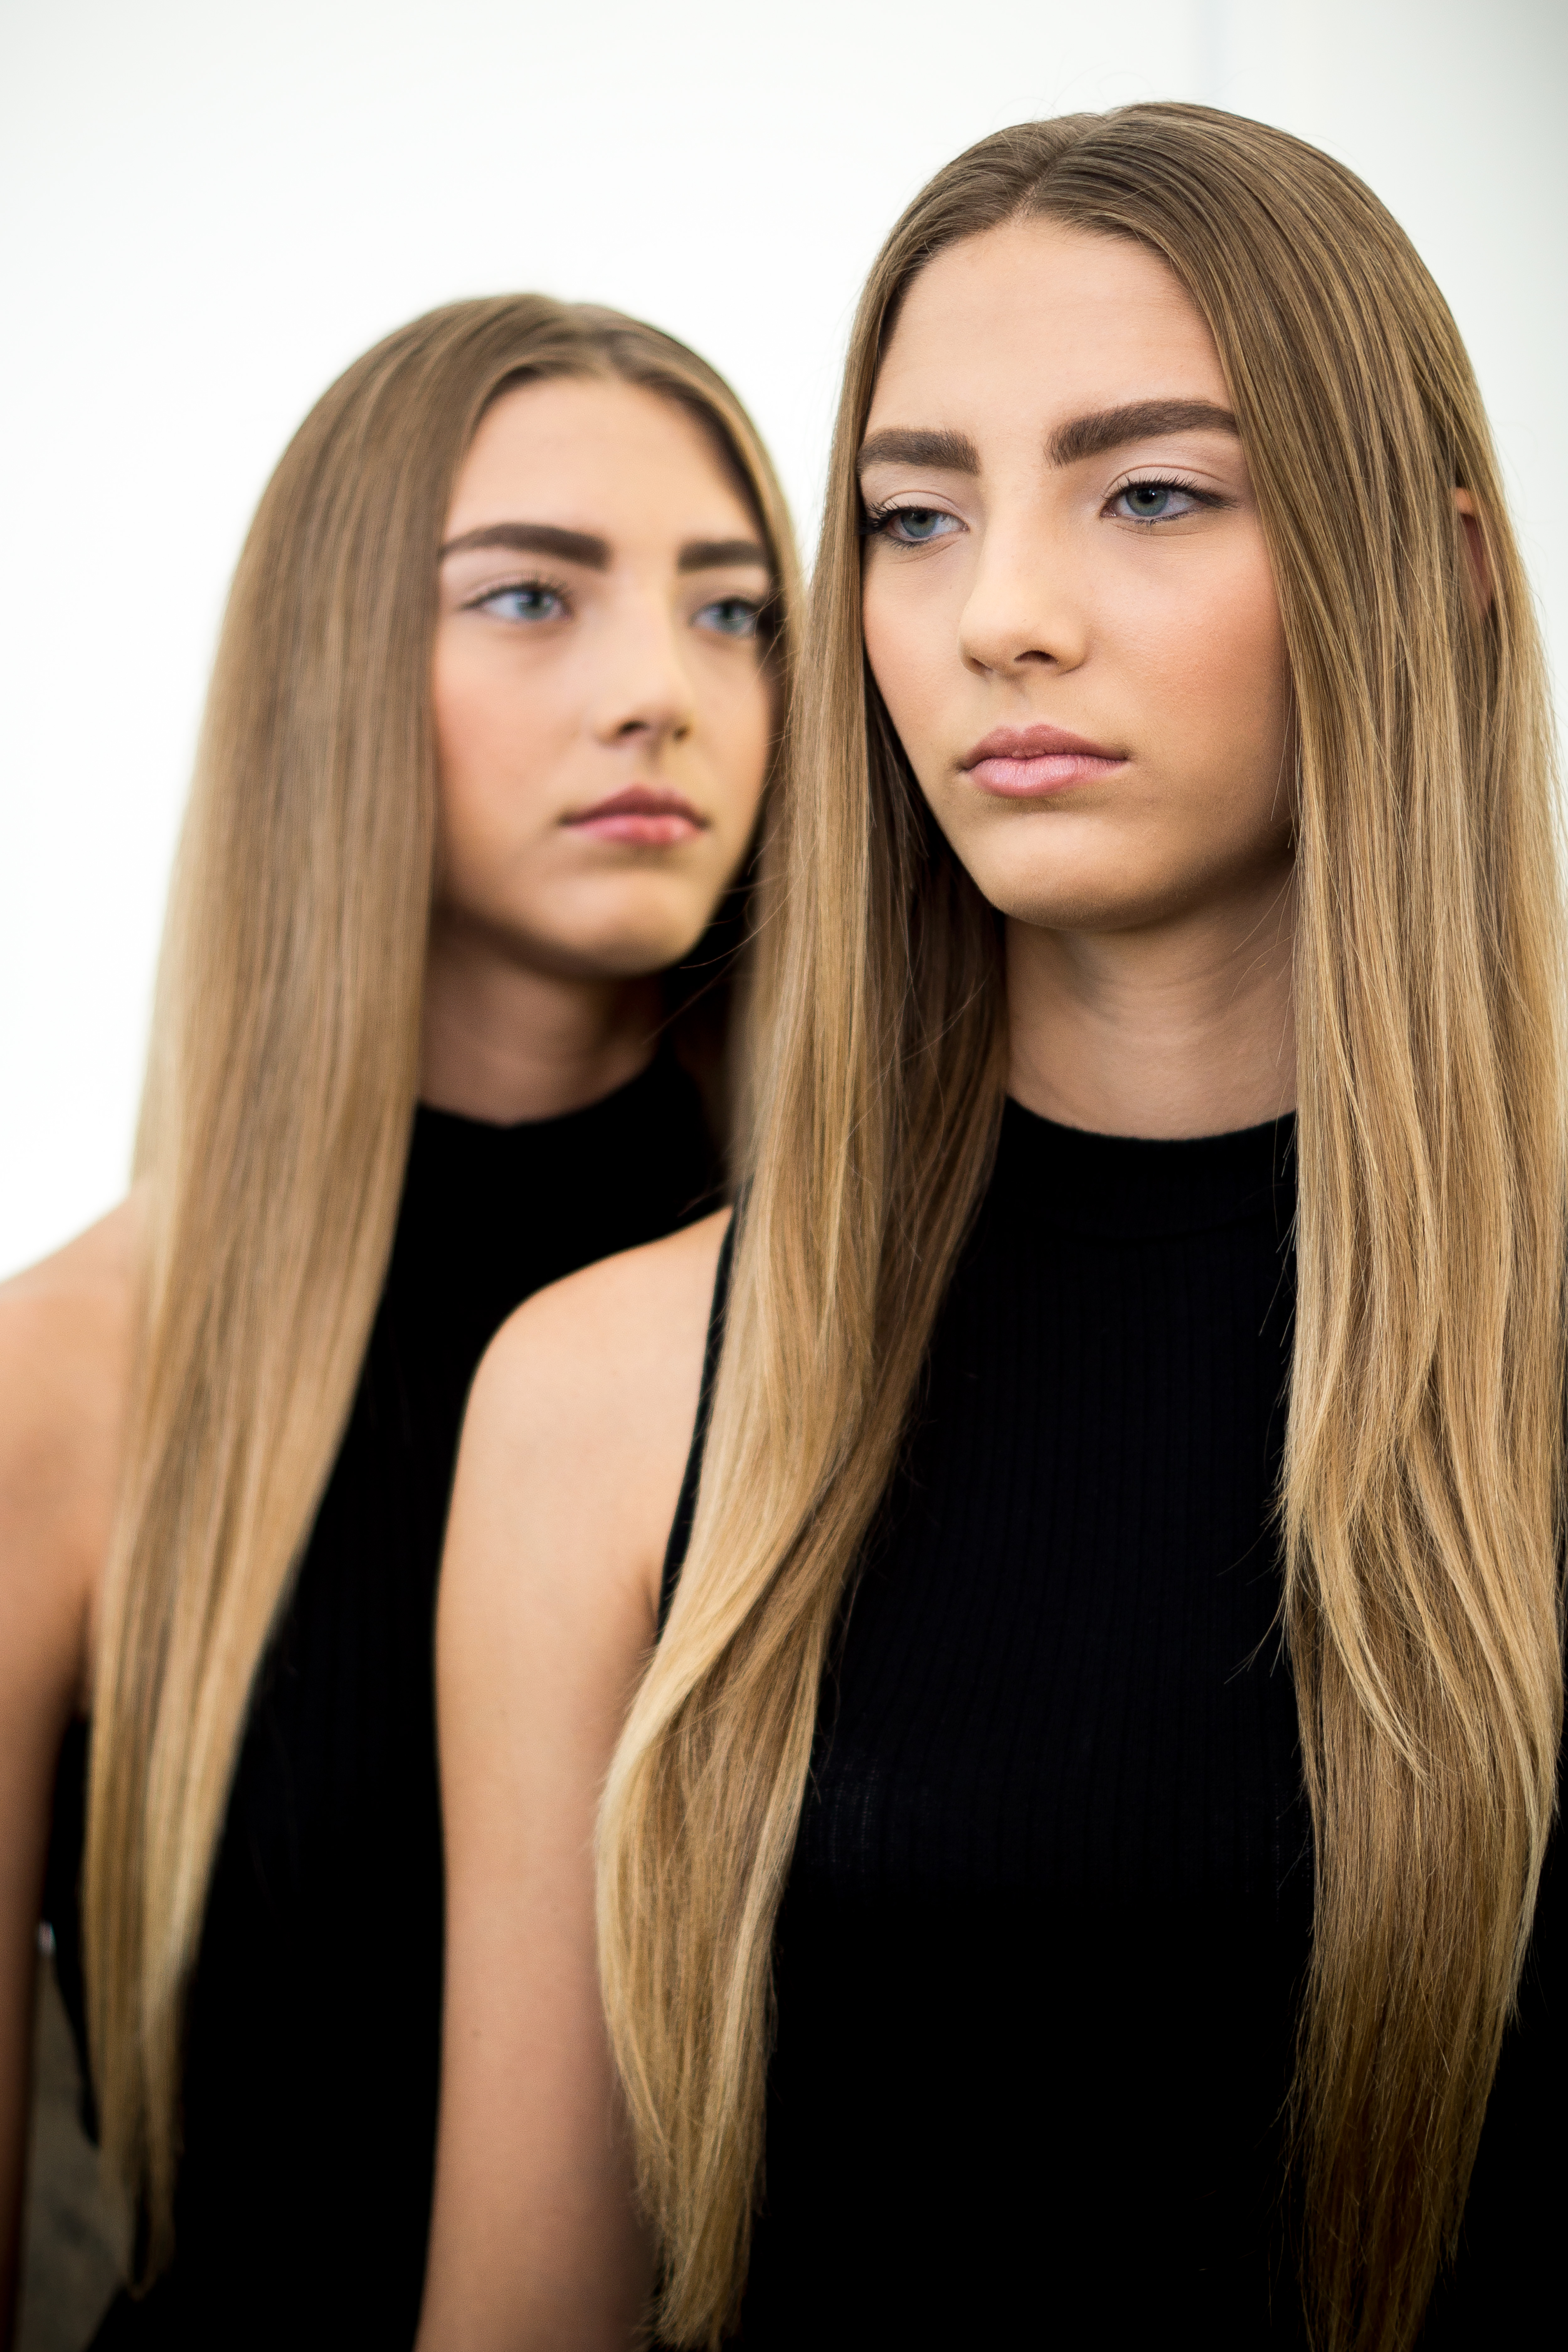 lookbook-twins-2.jpg